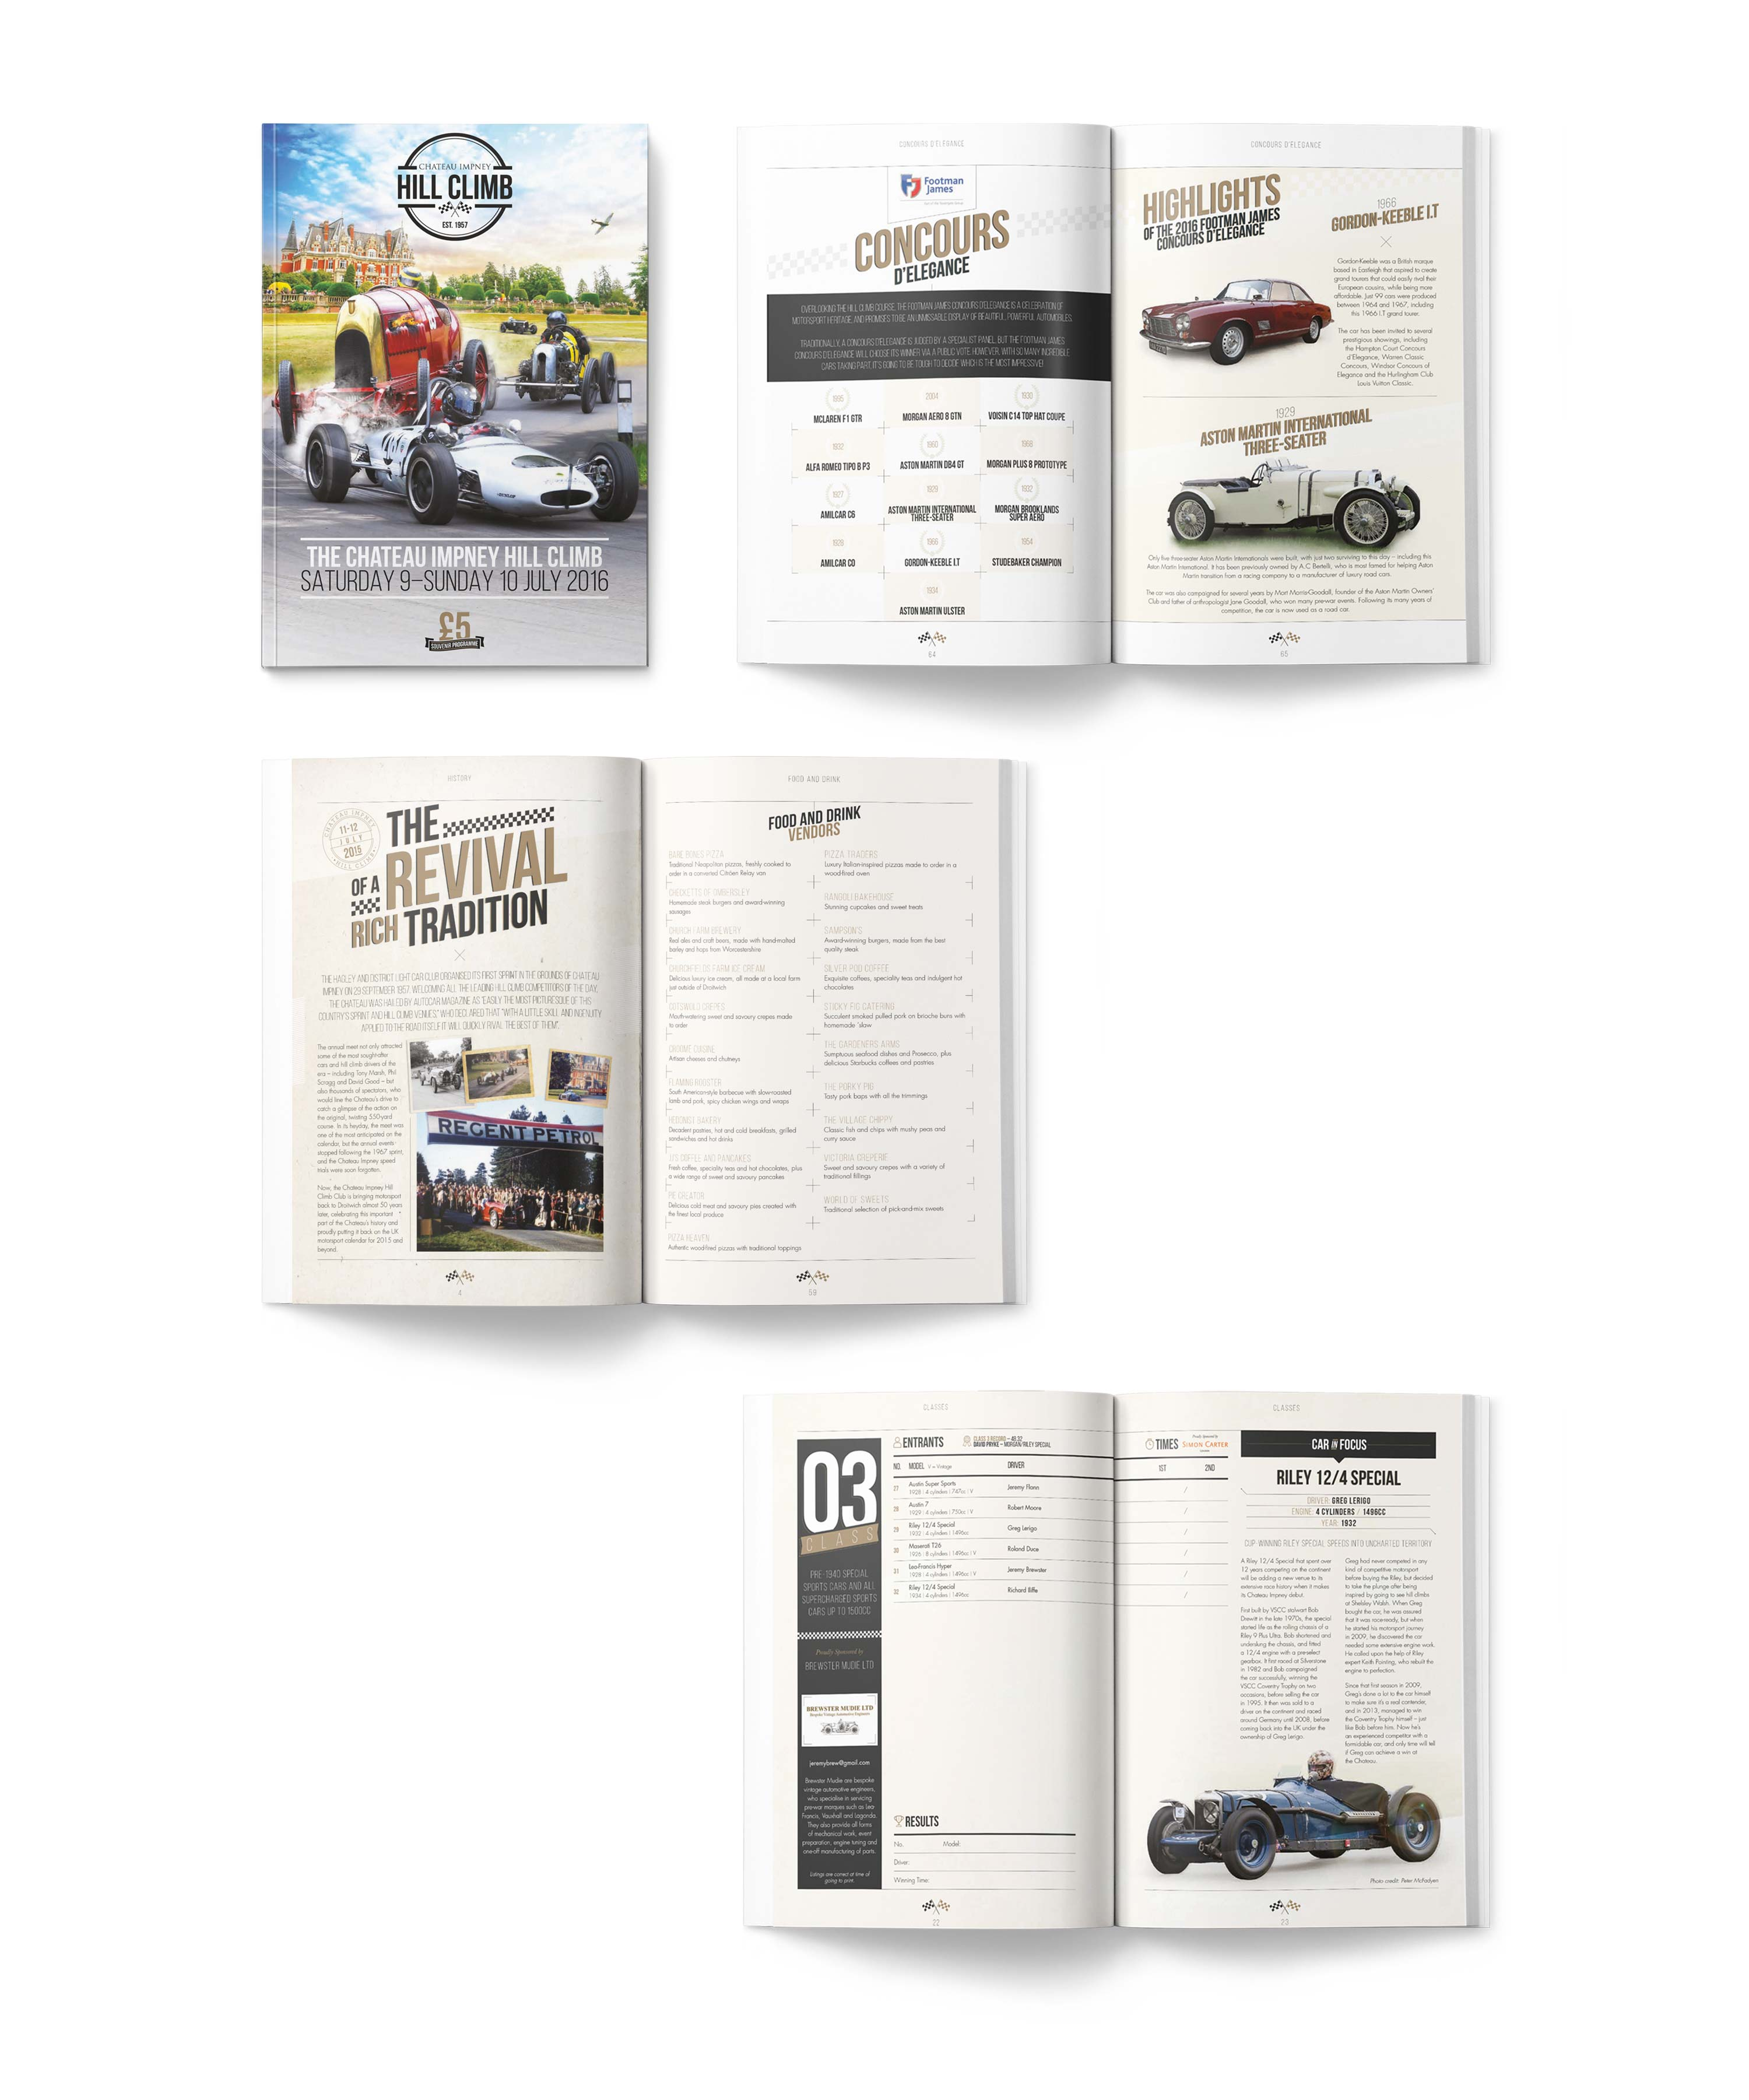 Event programme design and print for Chateau Impney Hill Climb by Mighty, marketing agency Worcester